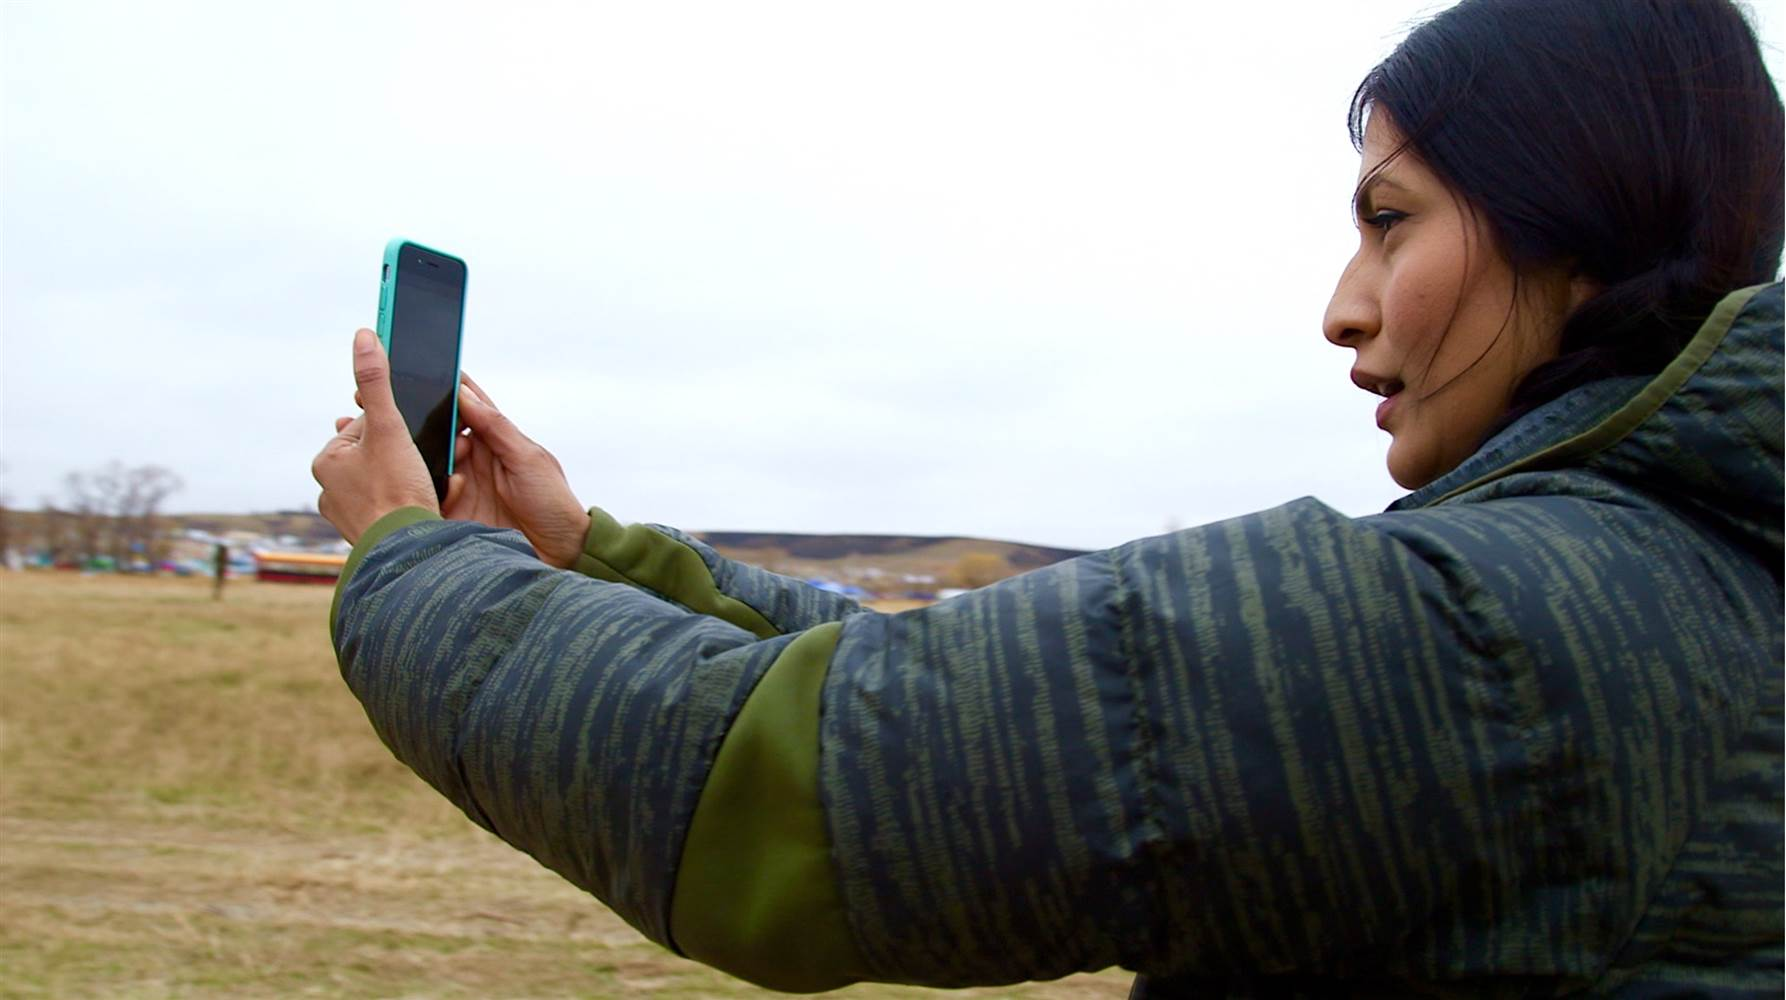 Ojibwe actor Tinsel Korey posts an update about the Dakota Access Pipeline protests to her social media followers on October 30, 2016.